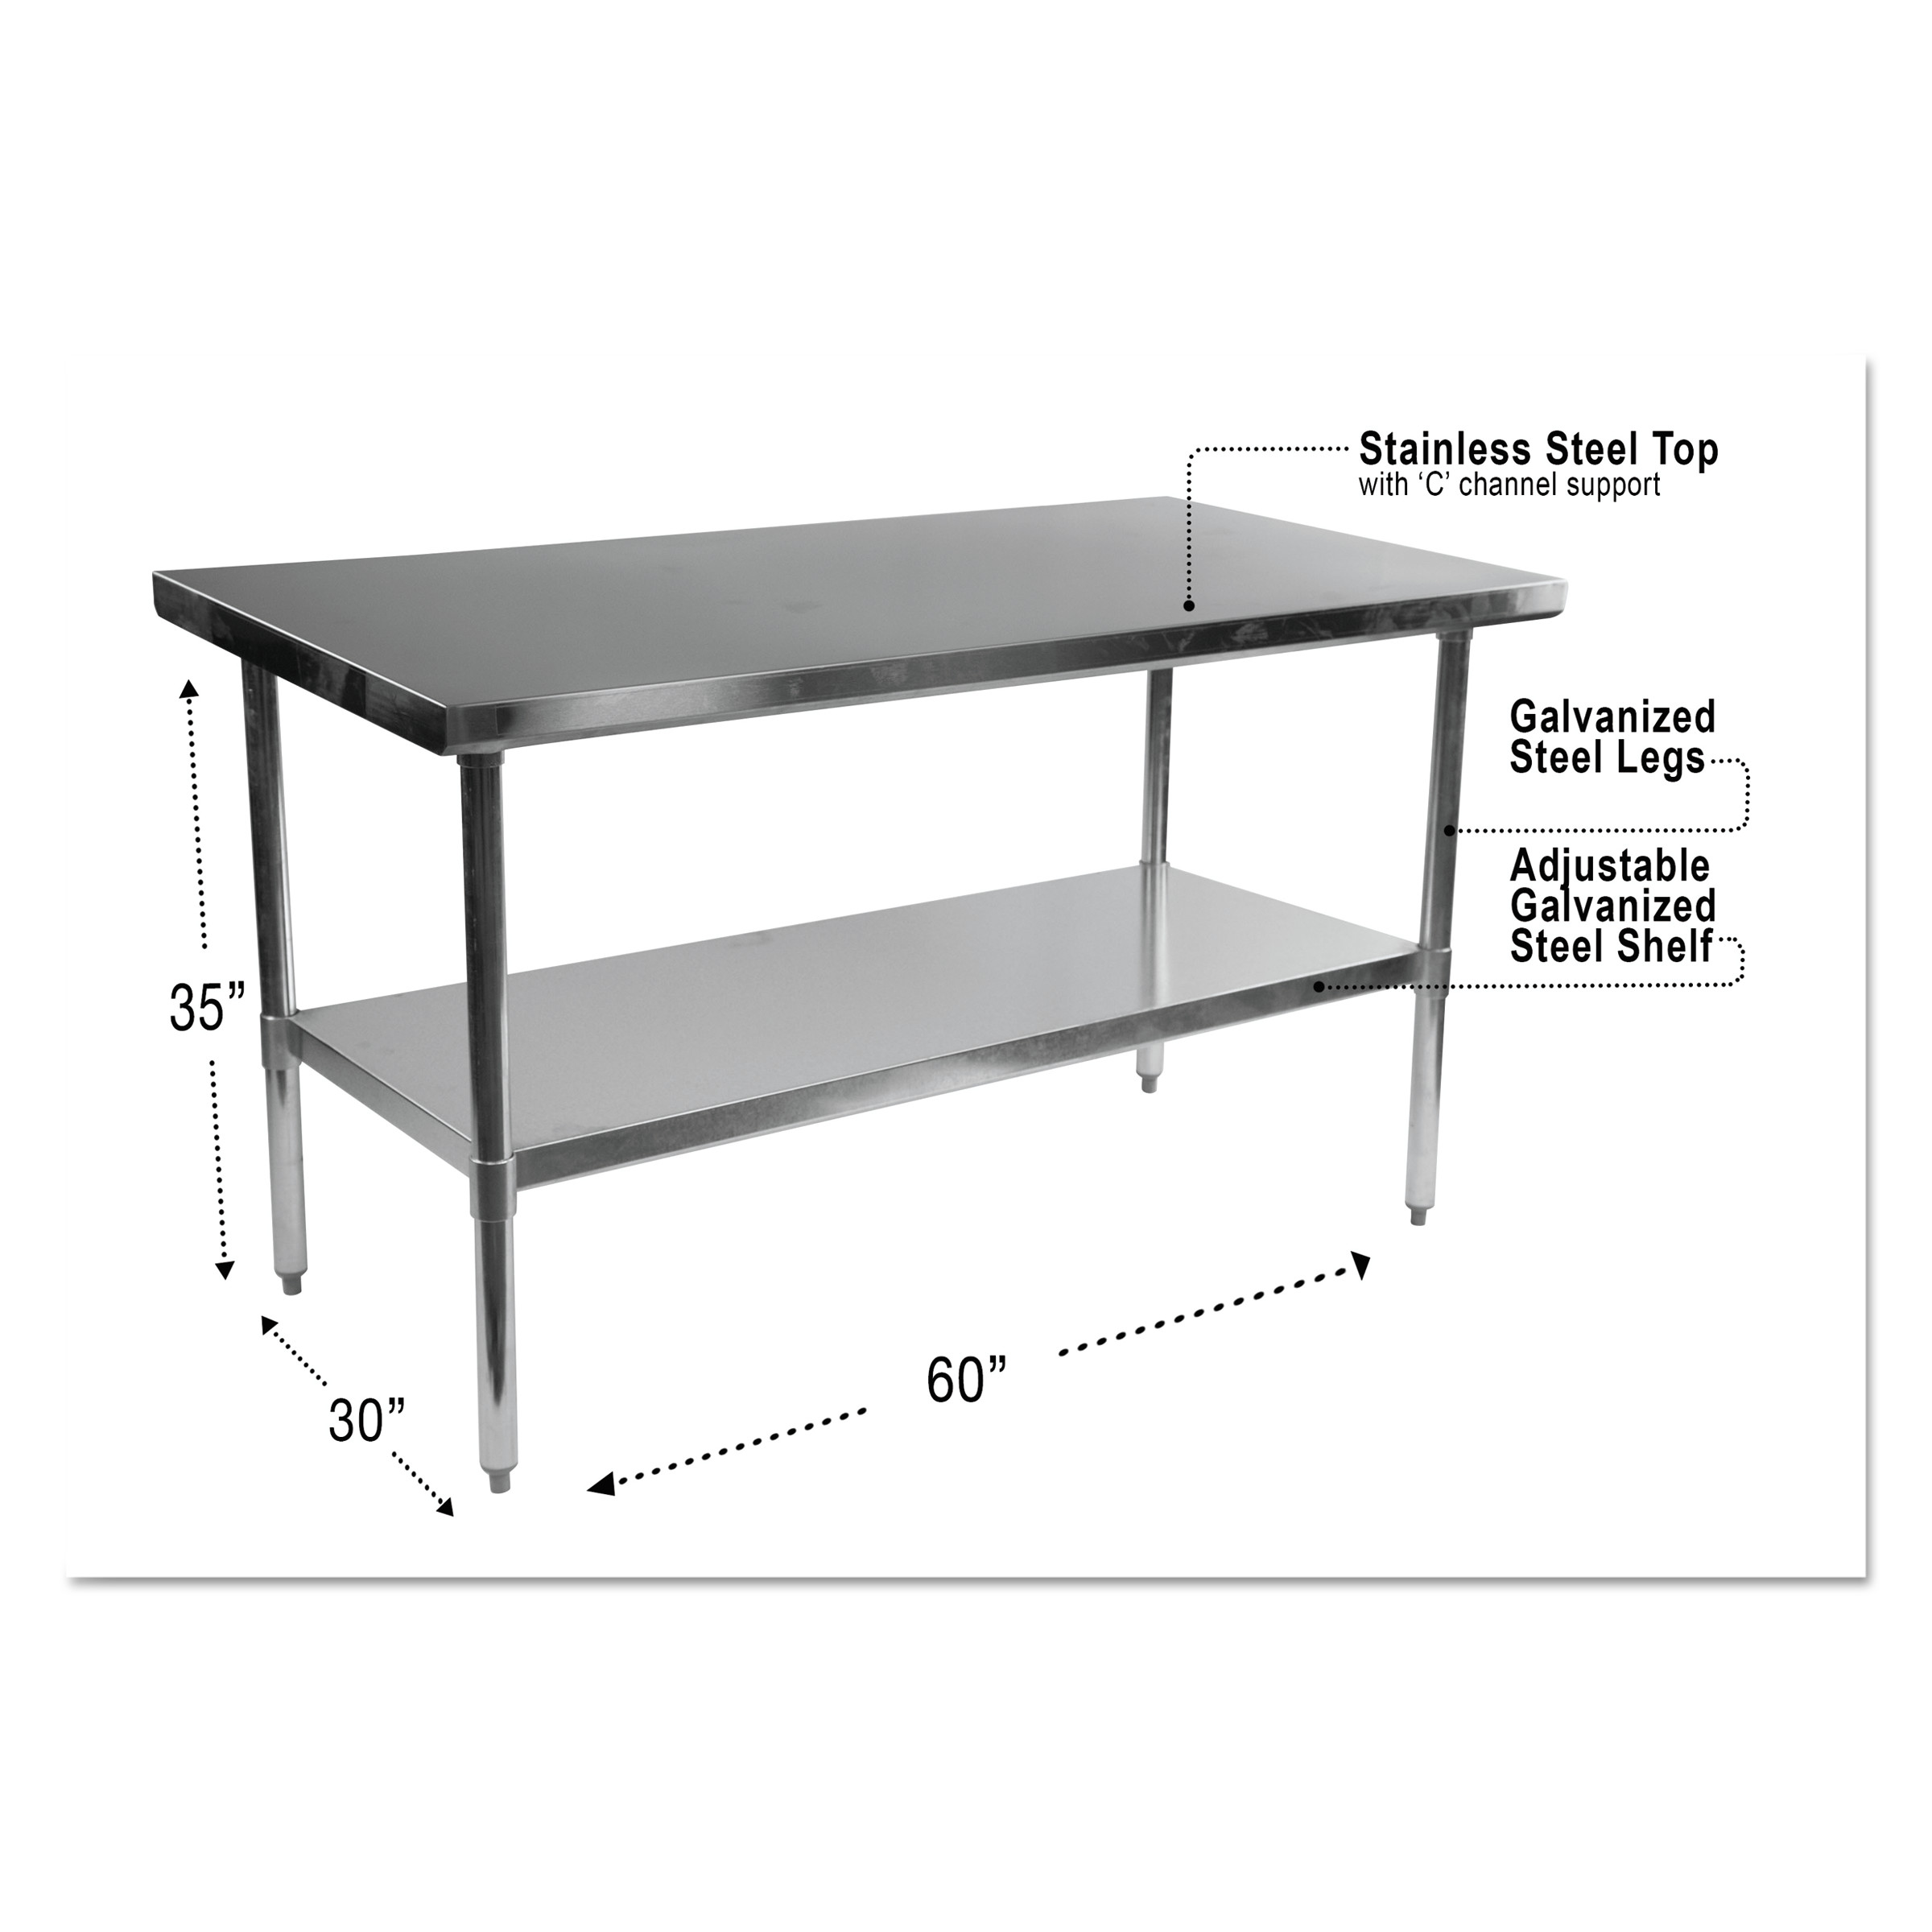 Alera Nsf Stainless Steel Commercial Kitchen Prep Work Table